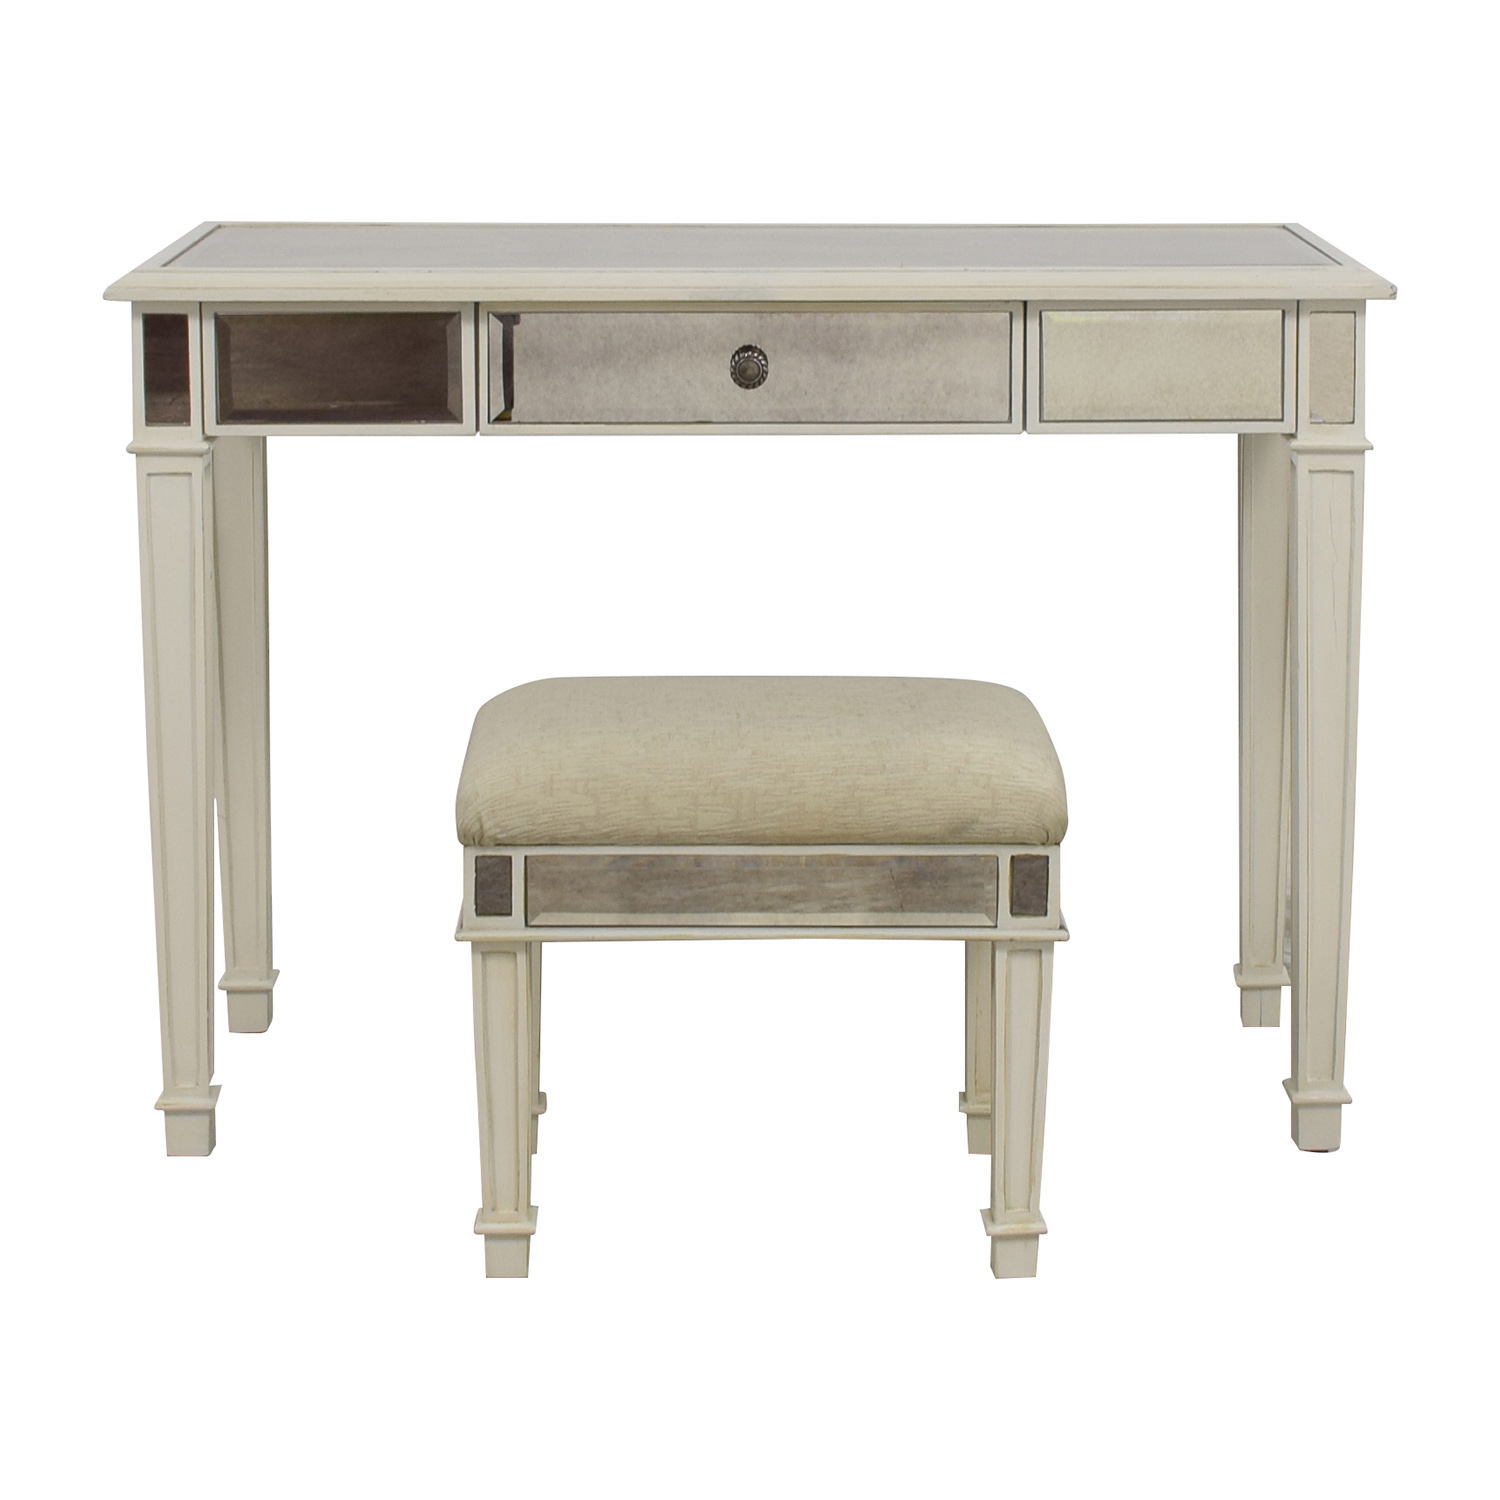 74 Off Pier 1 Pier 1 Imports Antique White Mirrored Vanity Table And Stool Tables